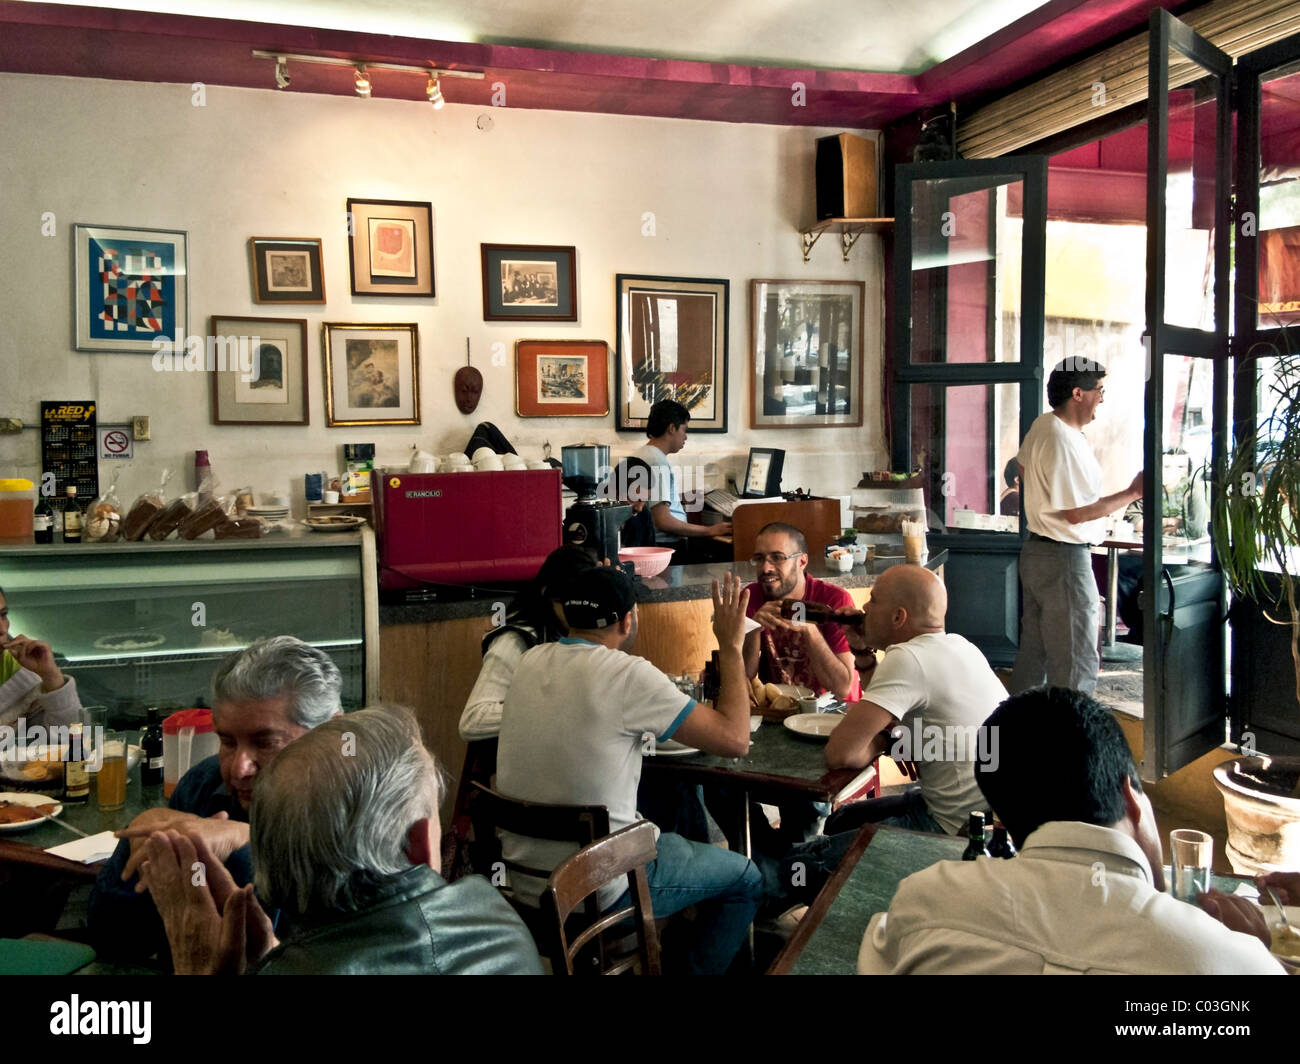 light filled interior of charming crowded art filled cafe with old world ambiance & conviviality Roma District - Stock Image